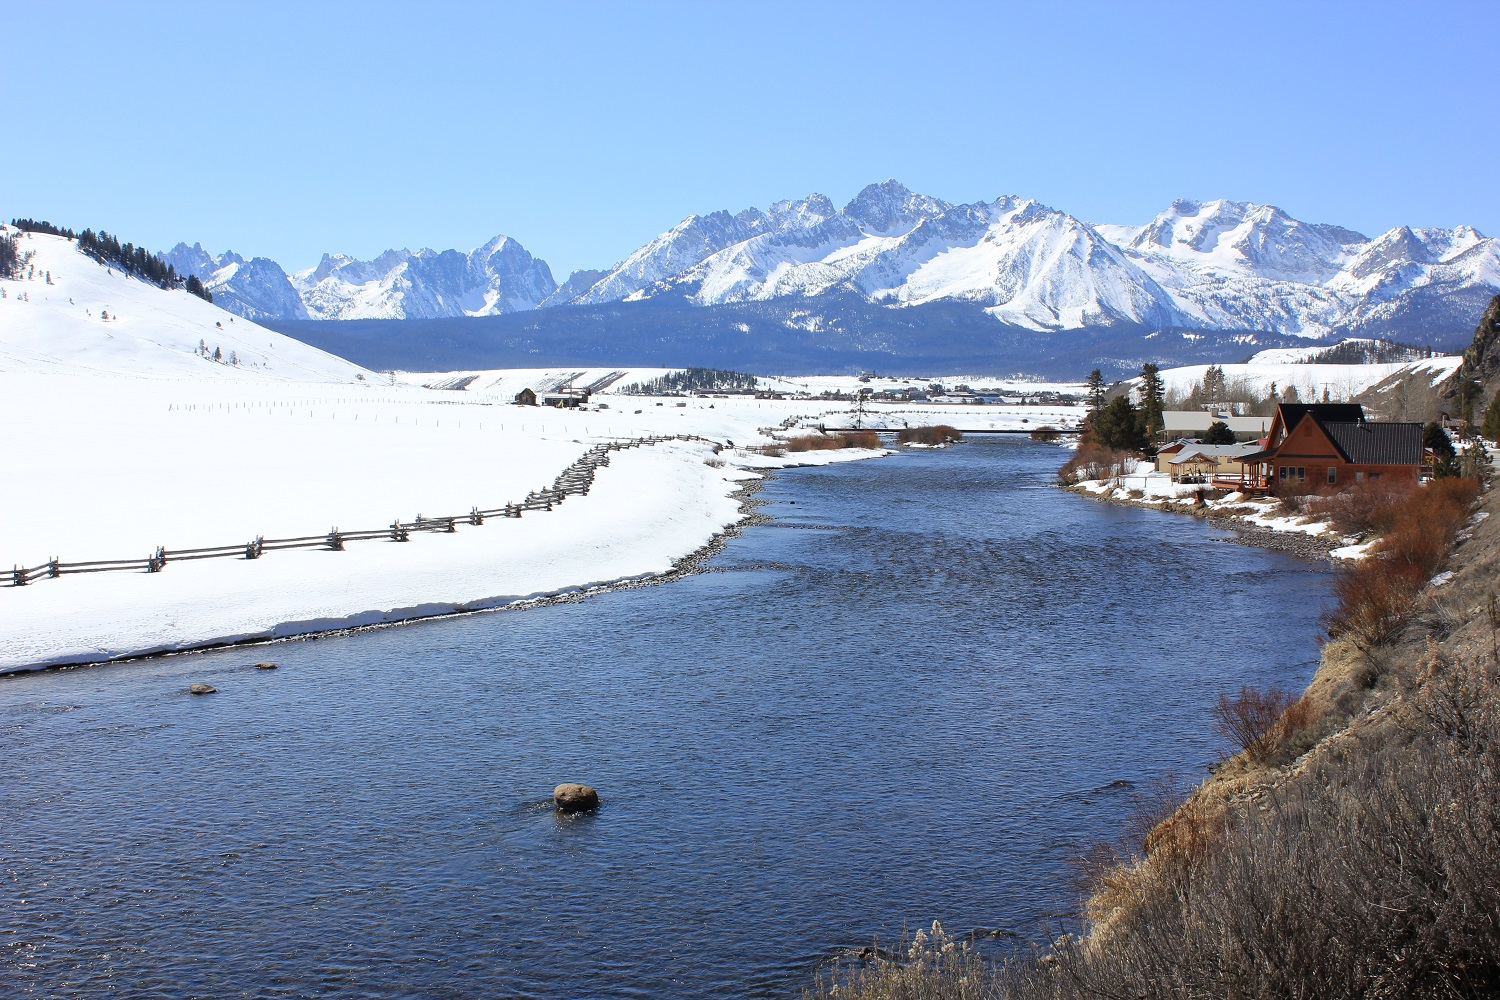 The Salmon River in the winter with the Sawtooth Mountains and Stanley, Idaho in the background.